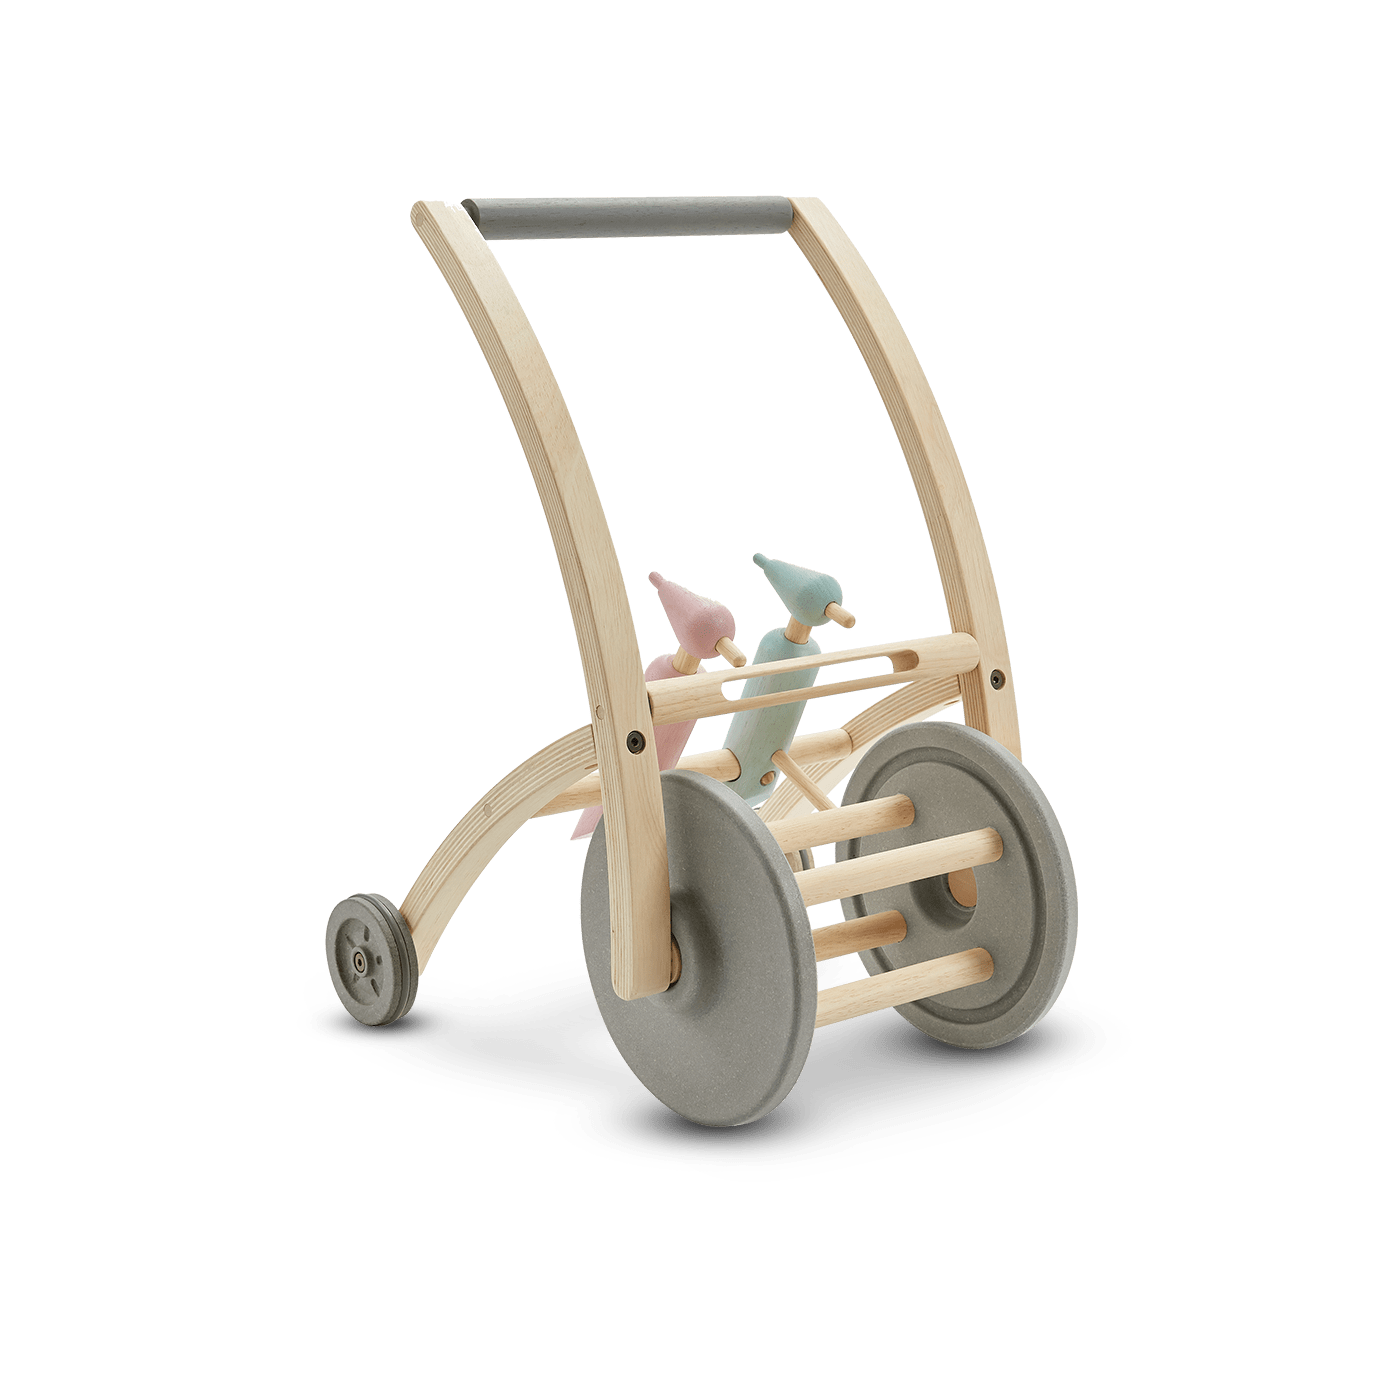 5720_PlanToys_WOODPECKER_WALKER_Push_and_Pull_Coordination_Gross_Motor_Language_and_Communications_Imagination_12m_Wooden_toys_Education_toys_Safety_Toys_Non-toxic_0.png